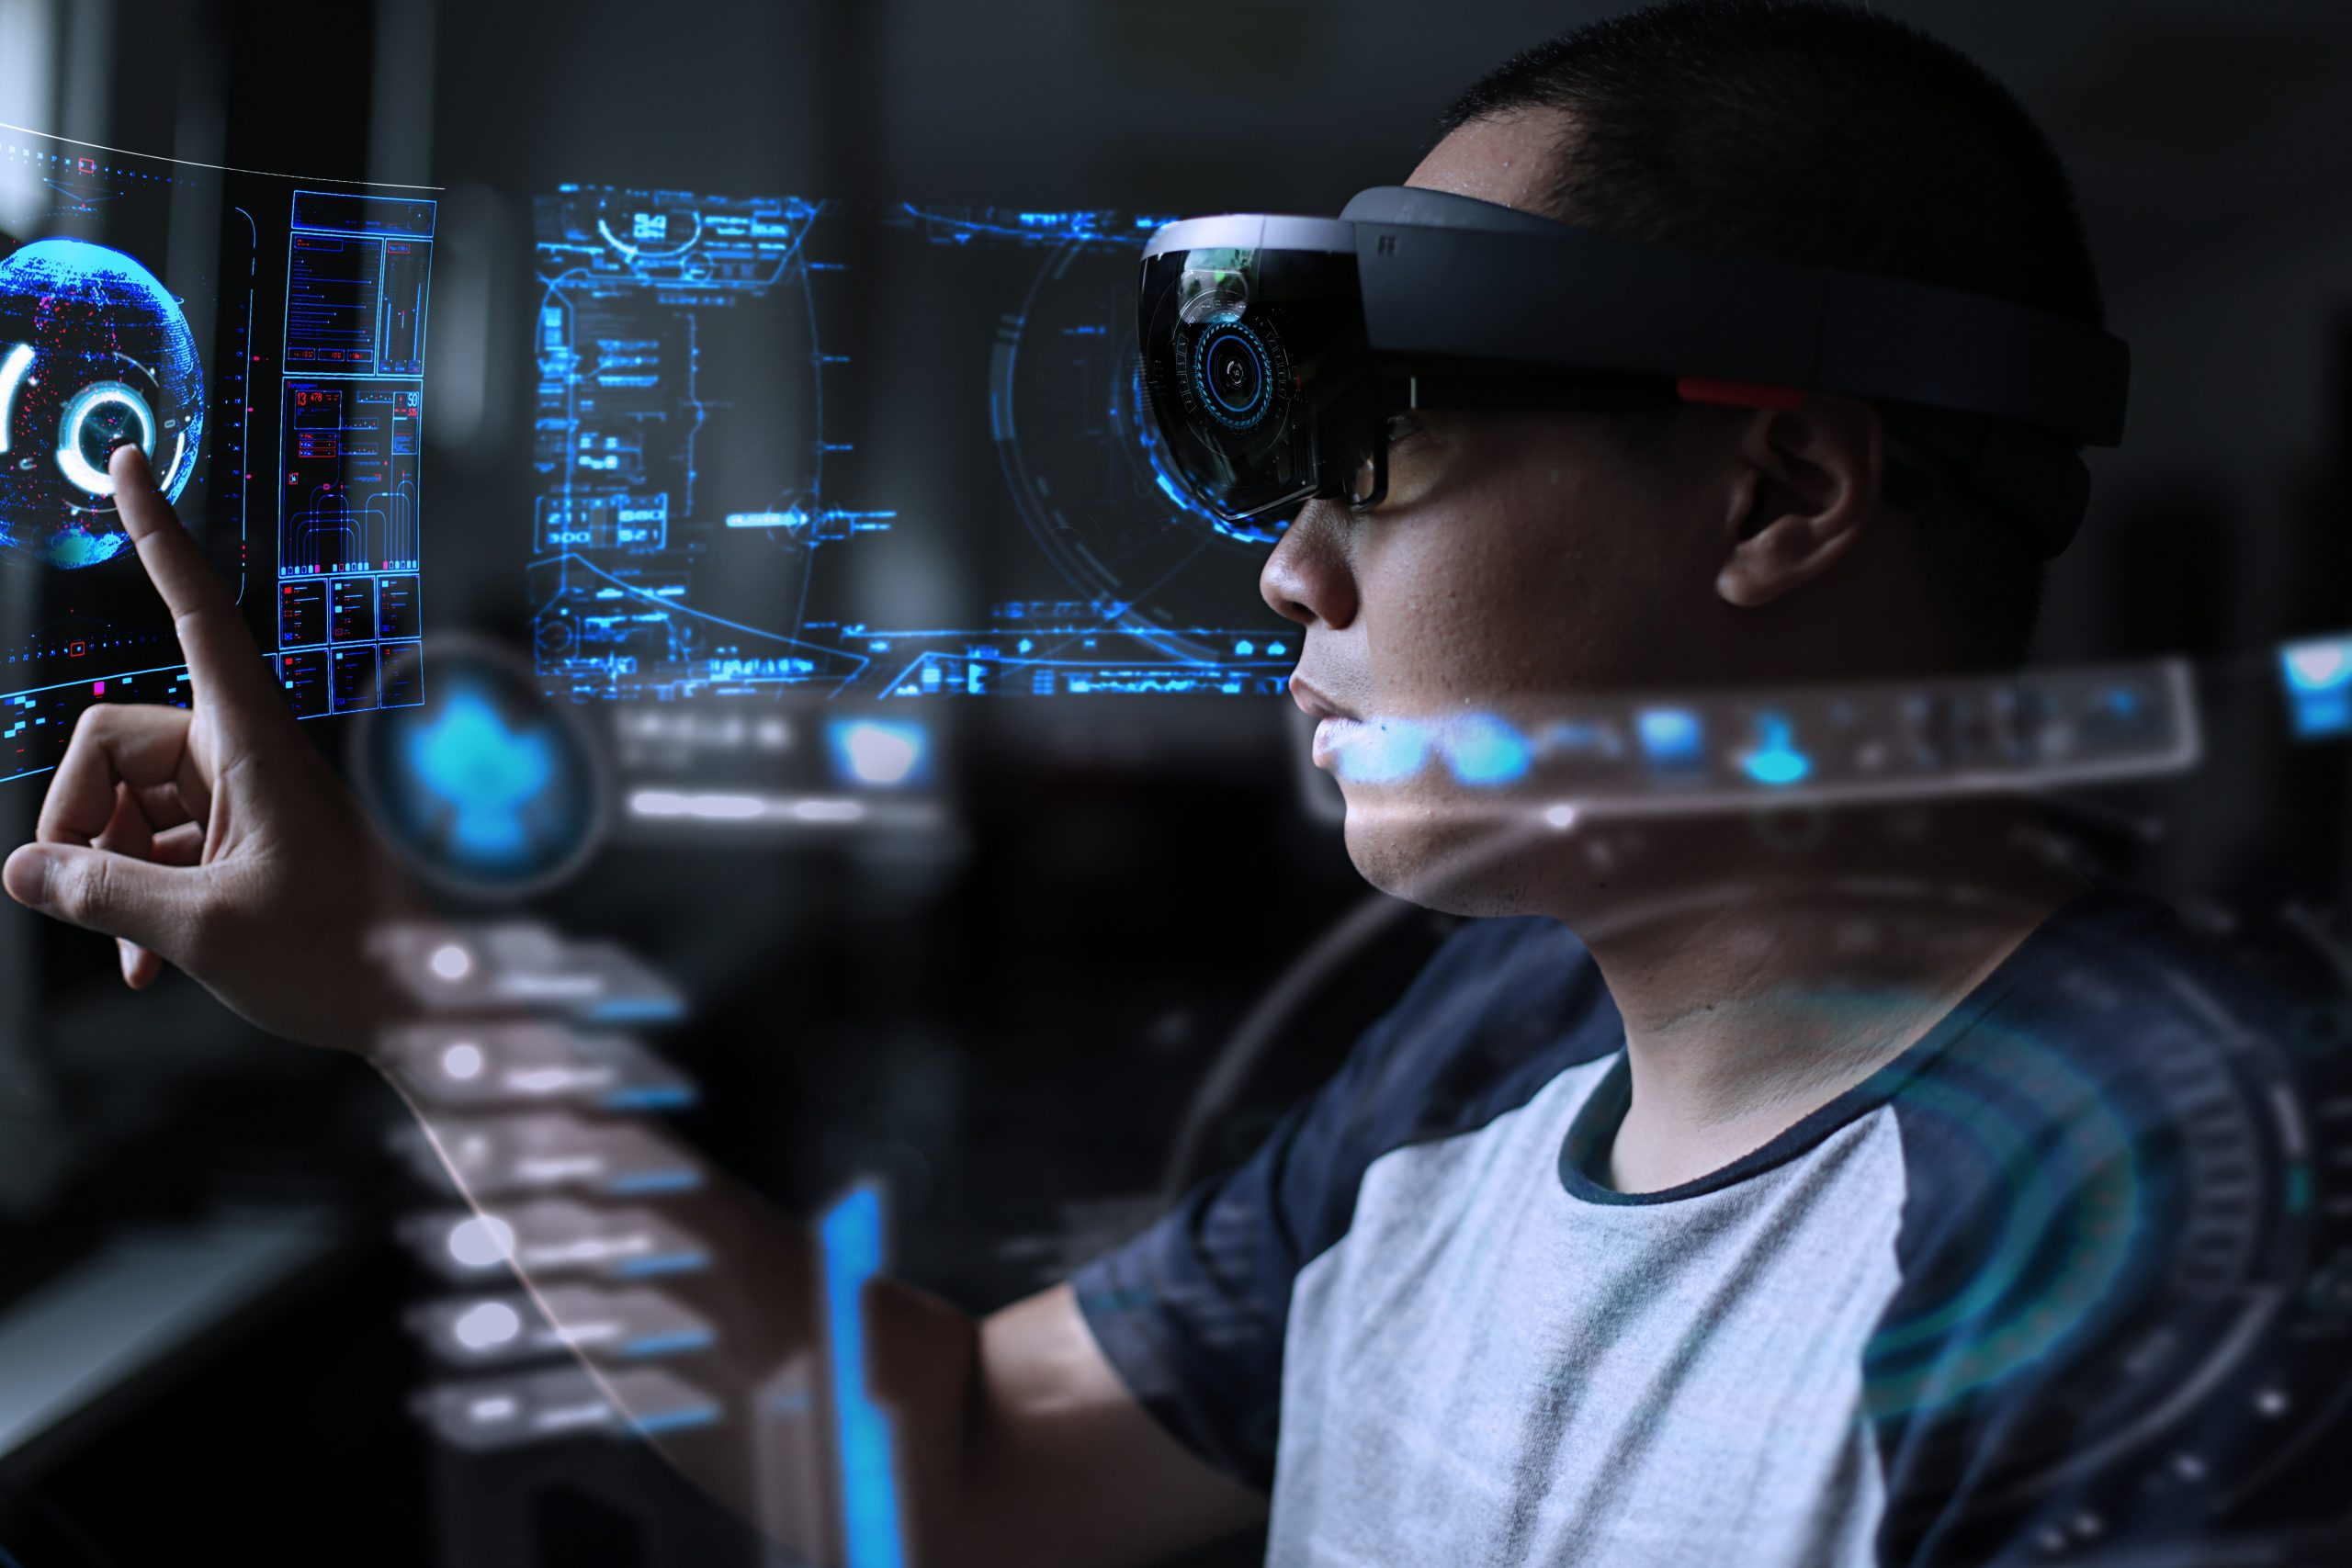 VIRTUAL REALITY STATS AND FACTS